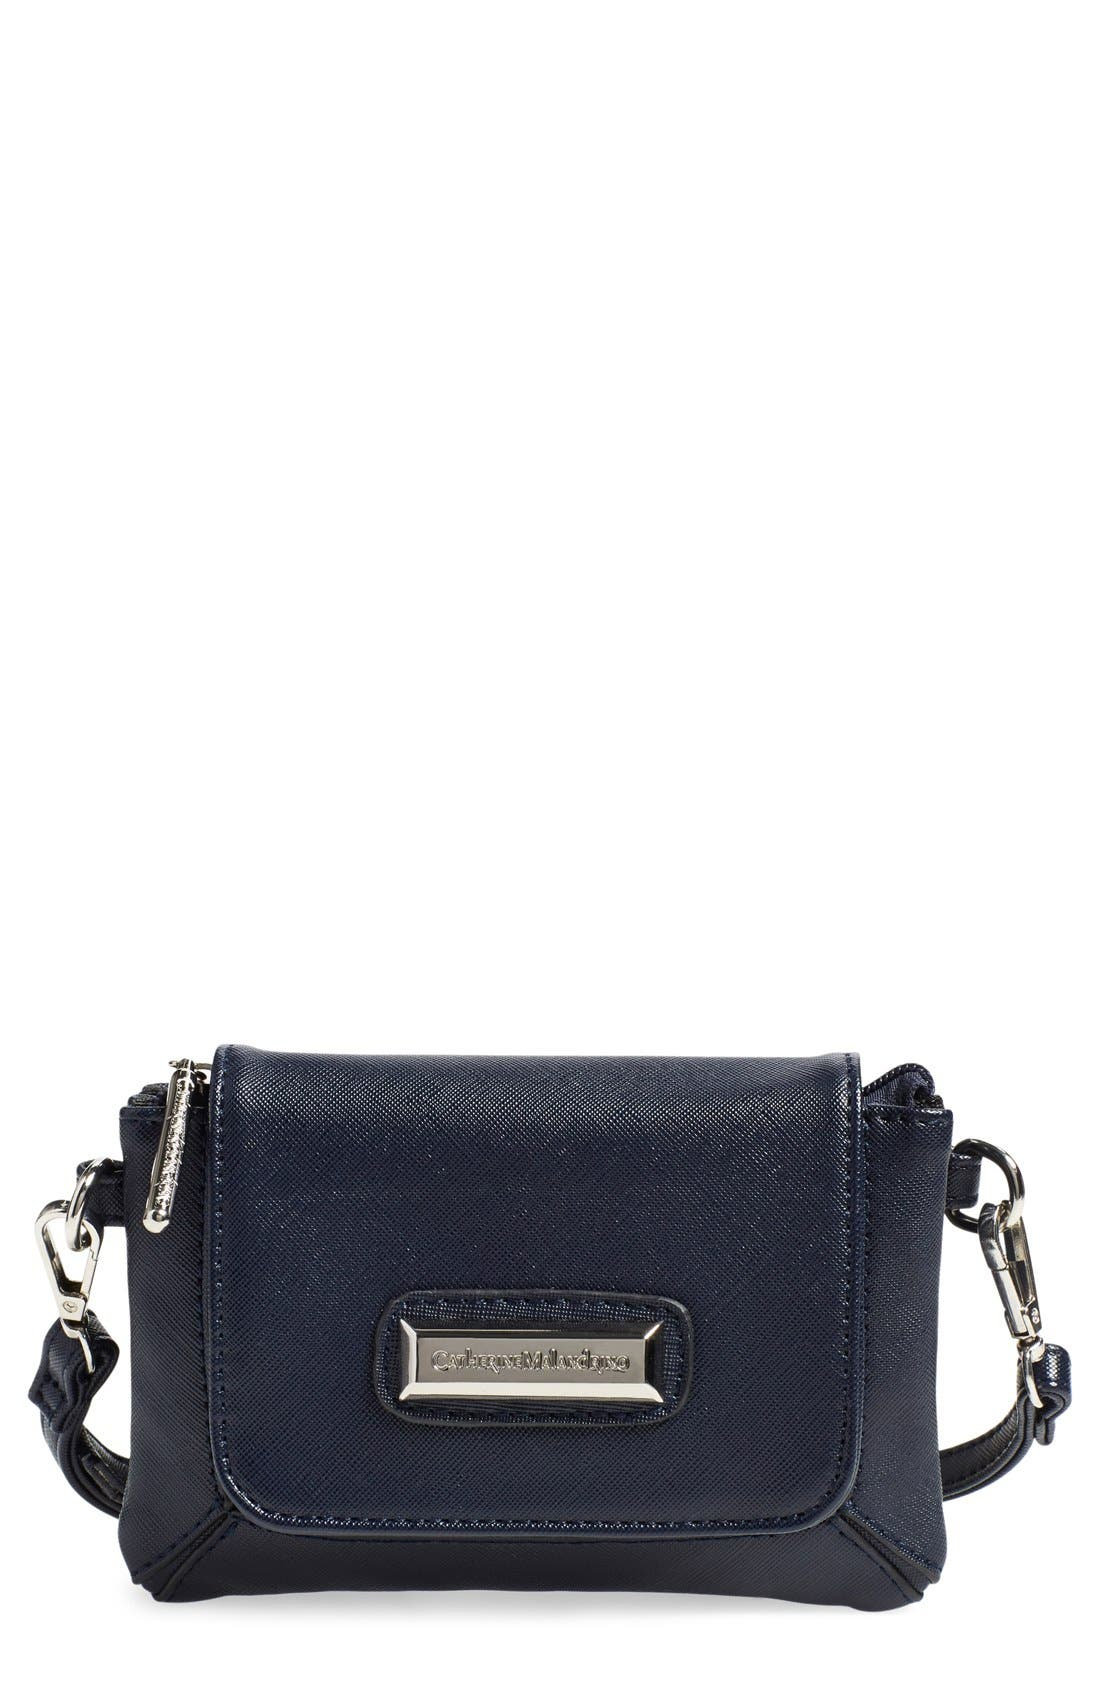 'Mini Clara' Crossbody Bag,                             Main thumbnail 1, color,                             020